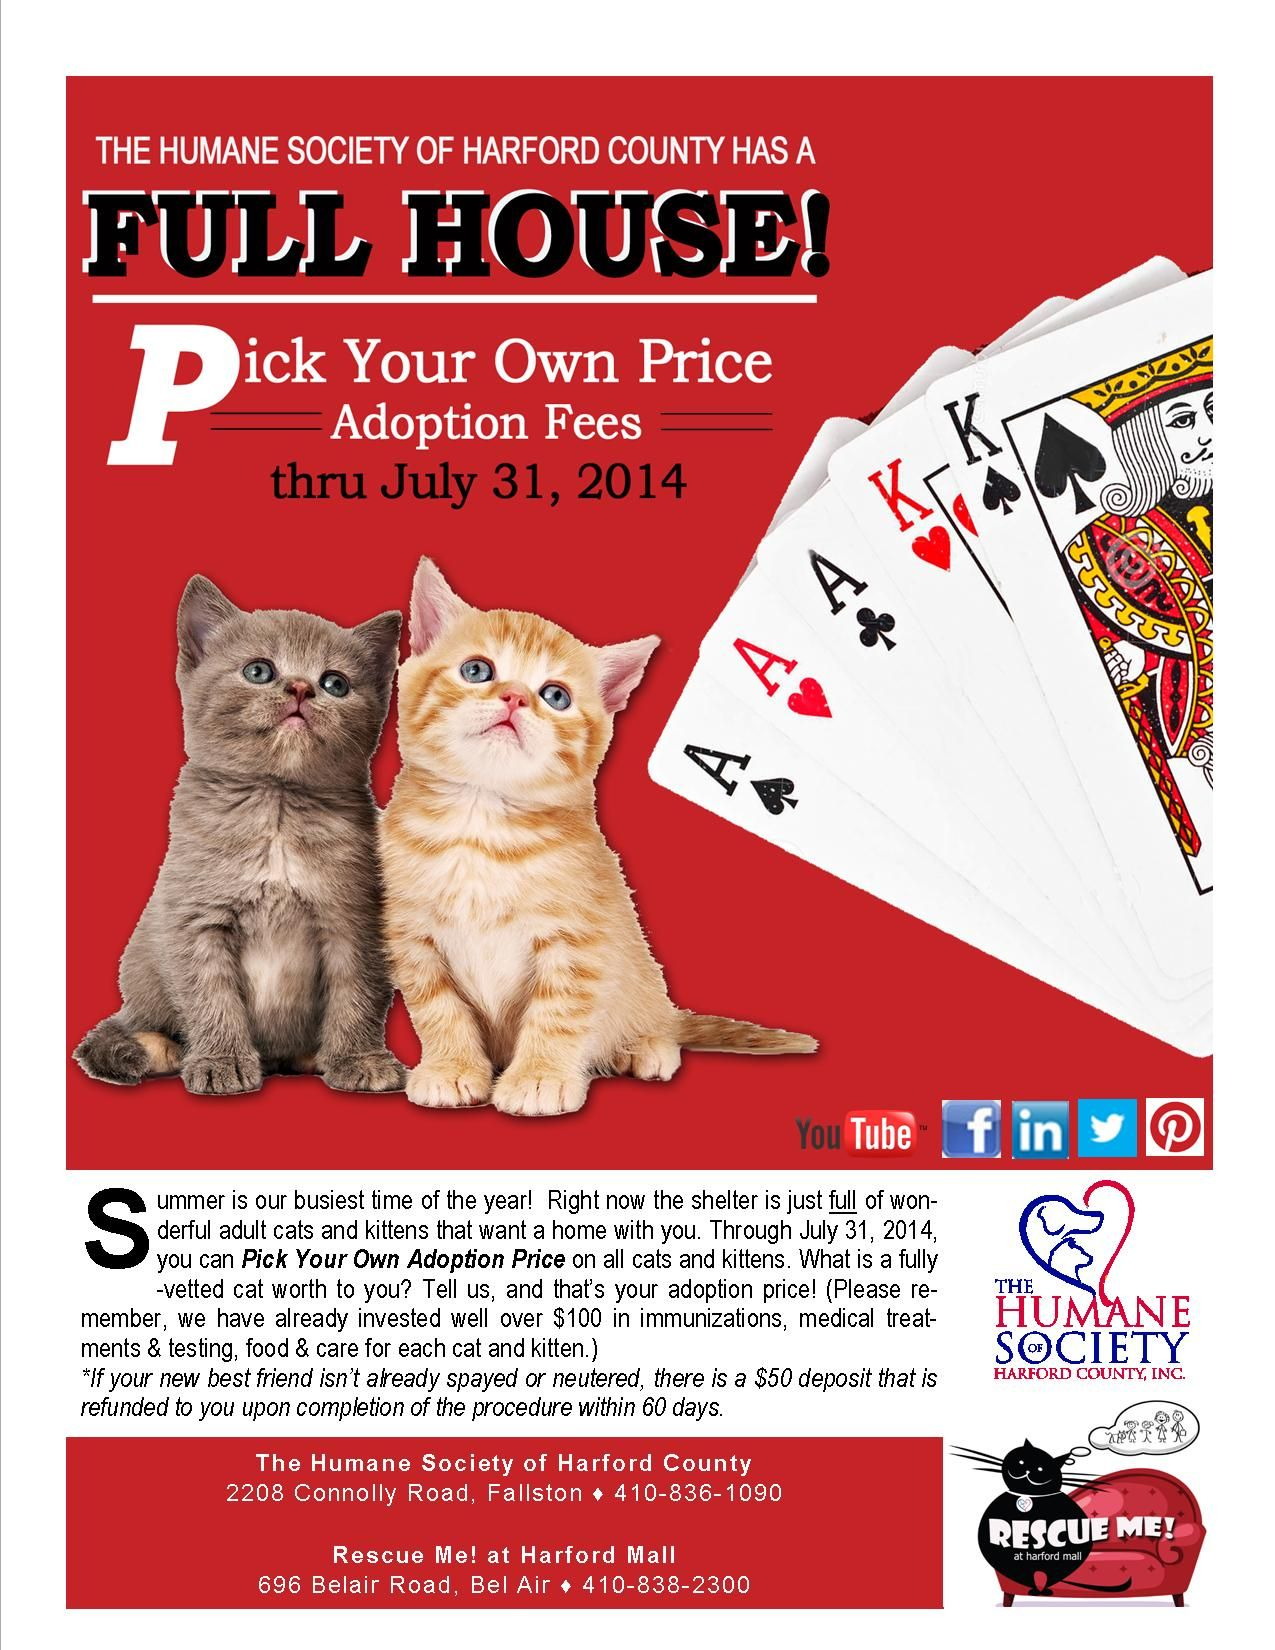 Now thru July 31, 2014 visit the shelter or our cat